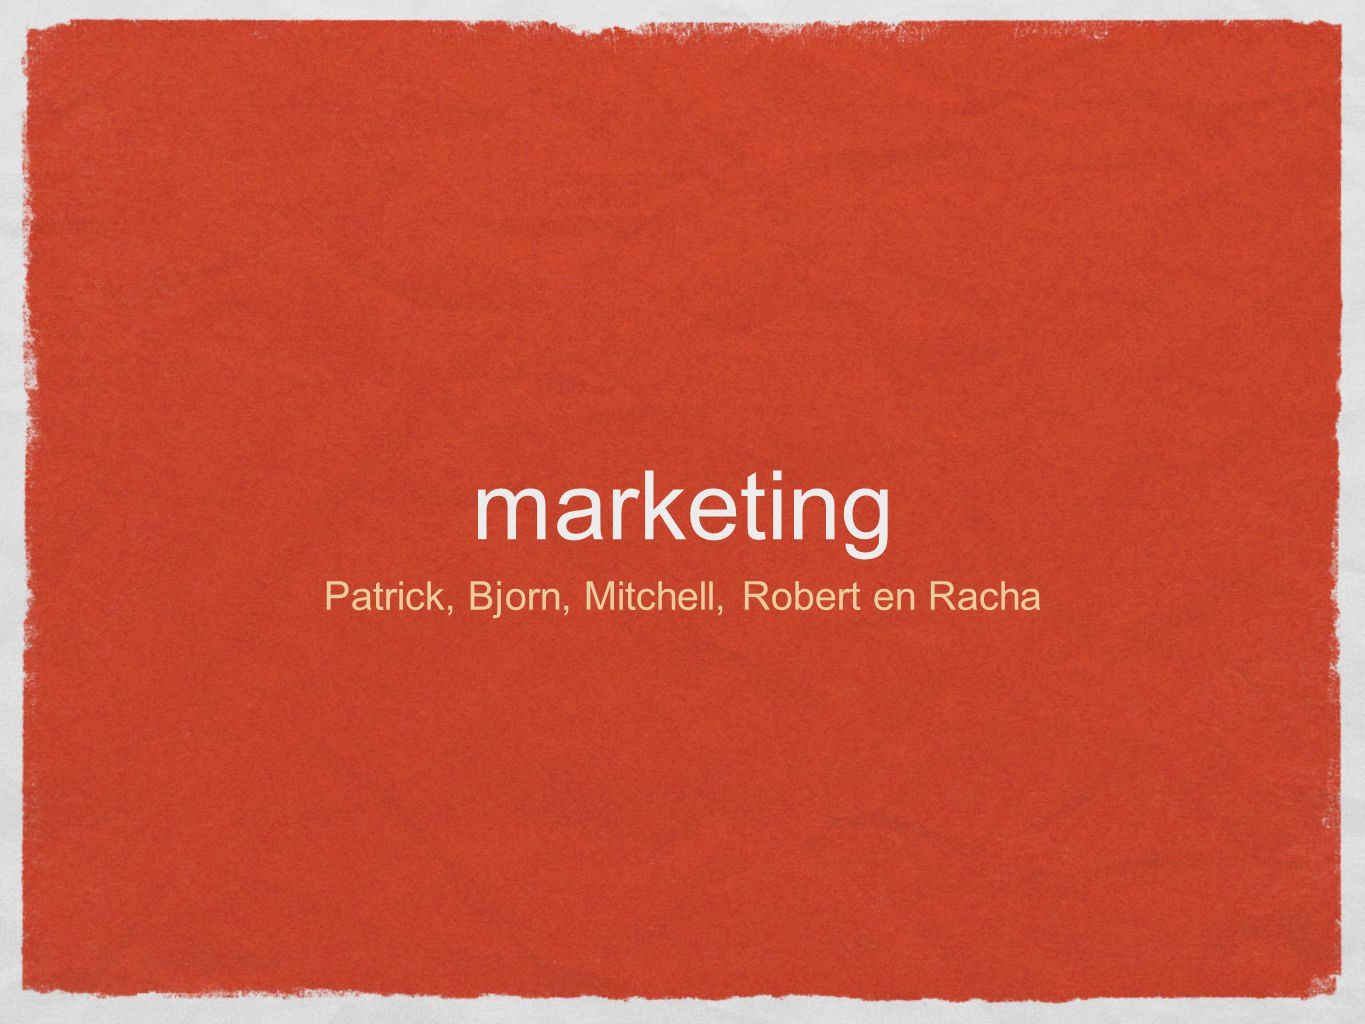 marketing Patrick, Bjorn, Mitchell, Robert en Racha